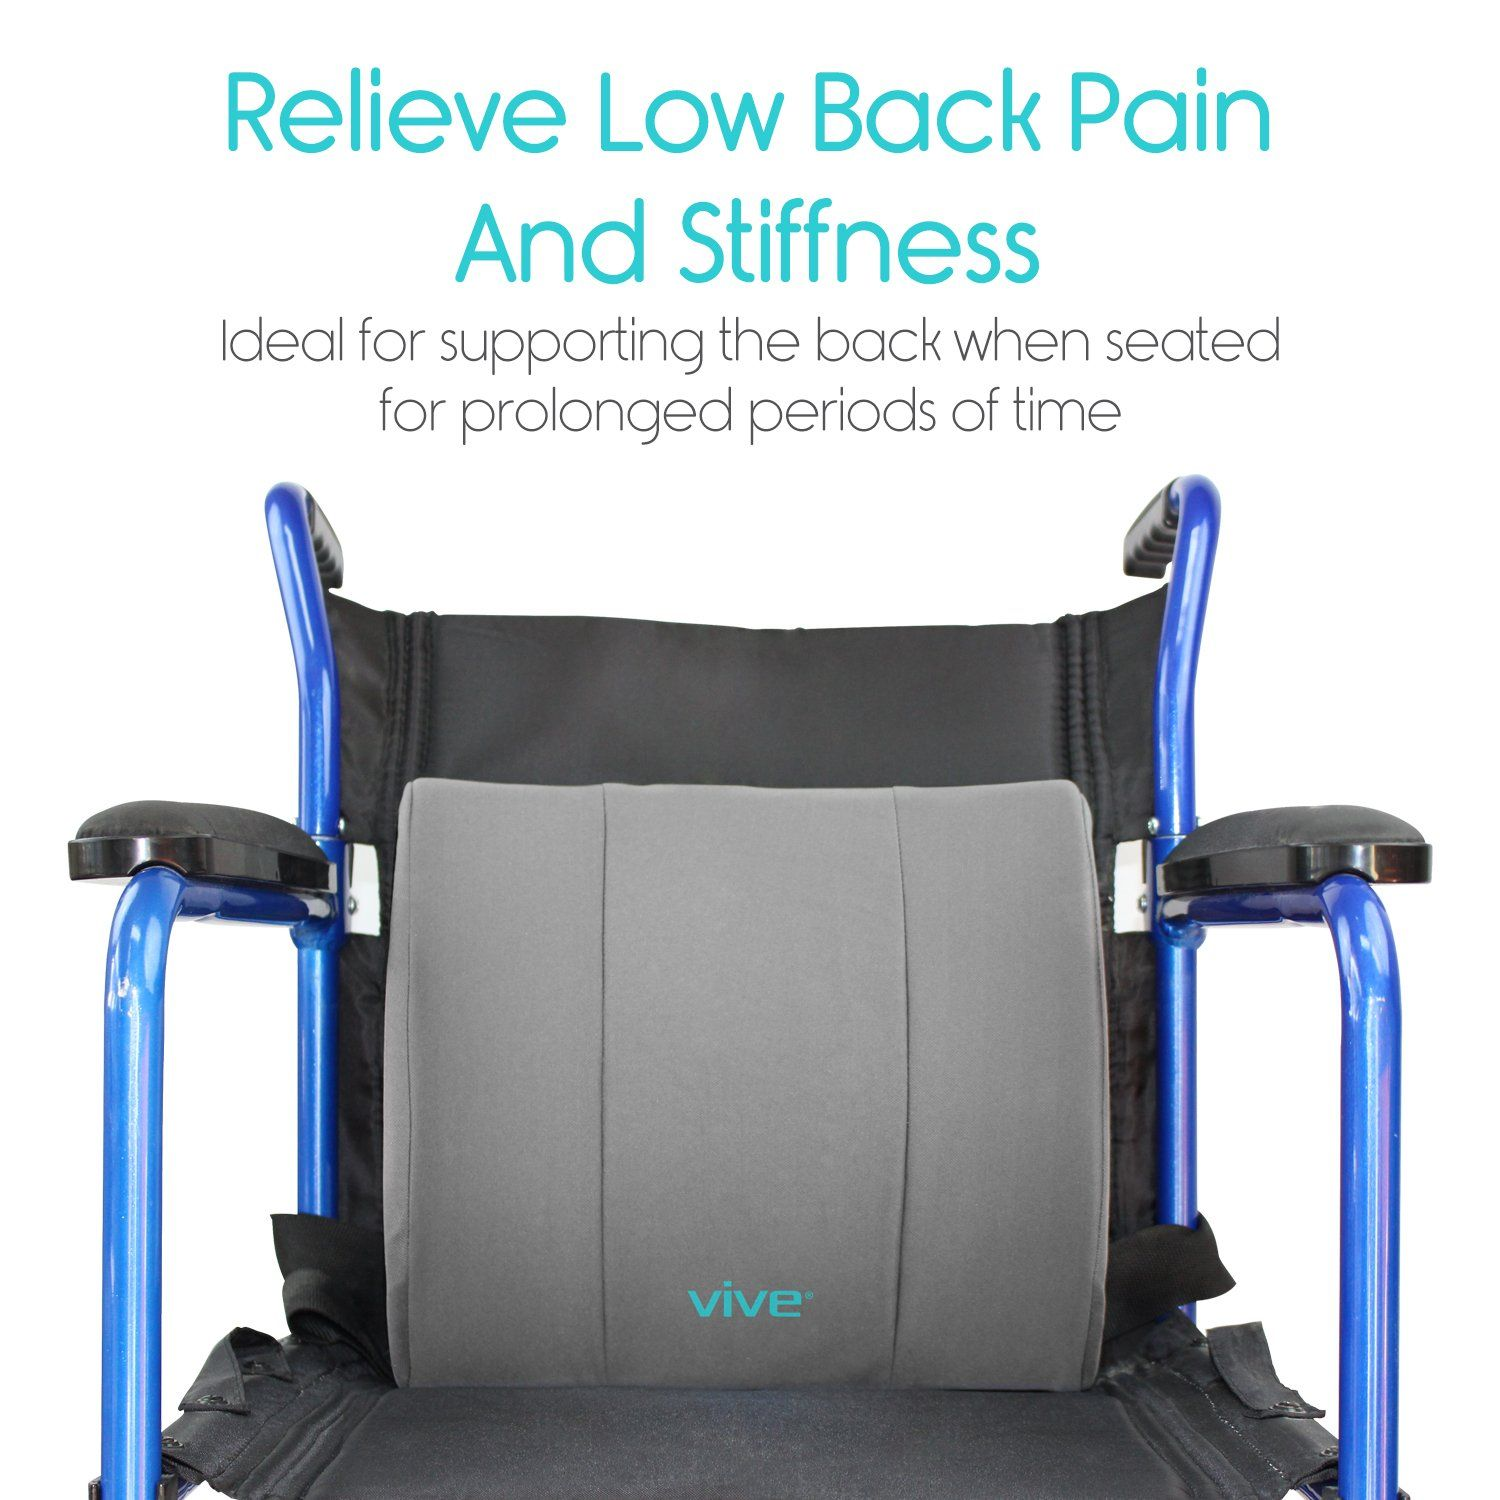 Lumbar support pillow by vive lower back seat cushion for office